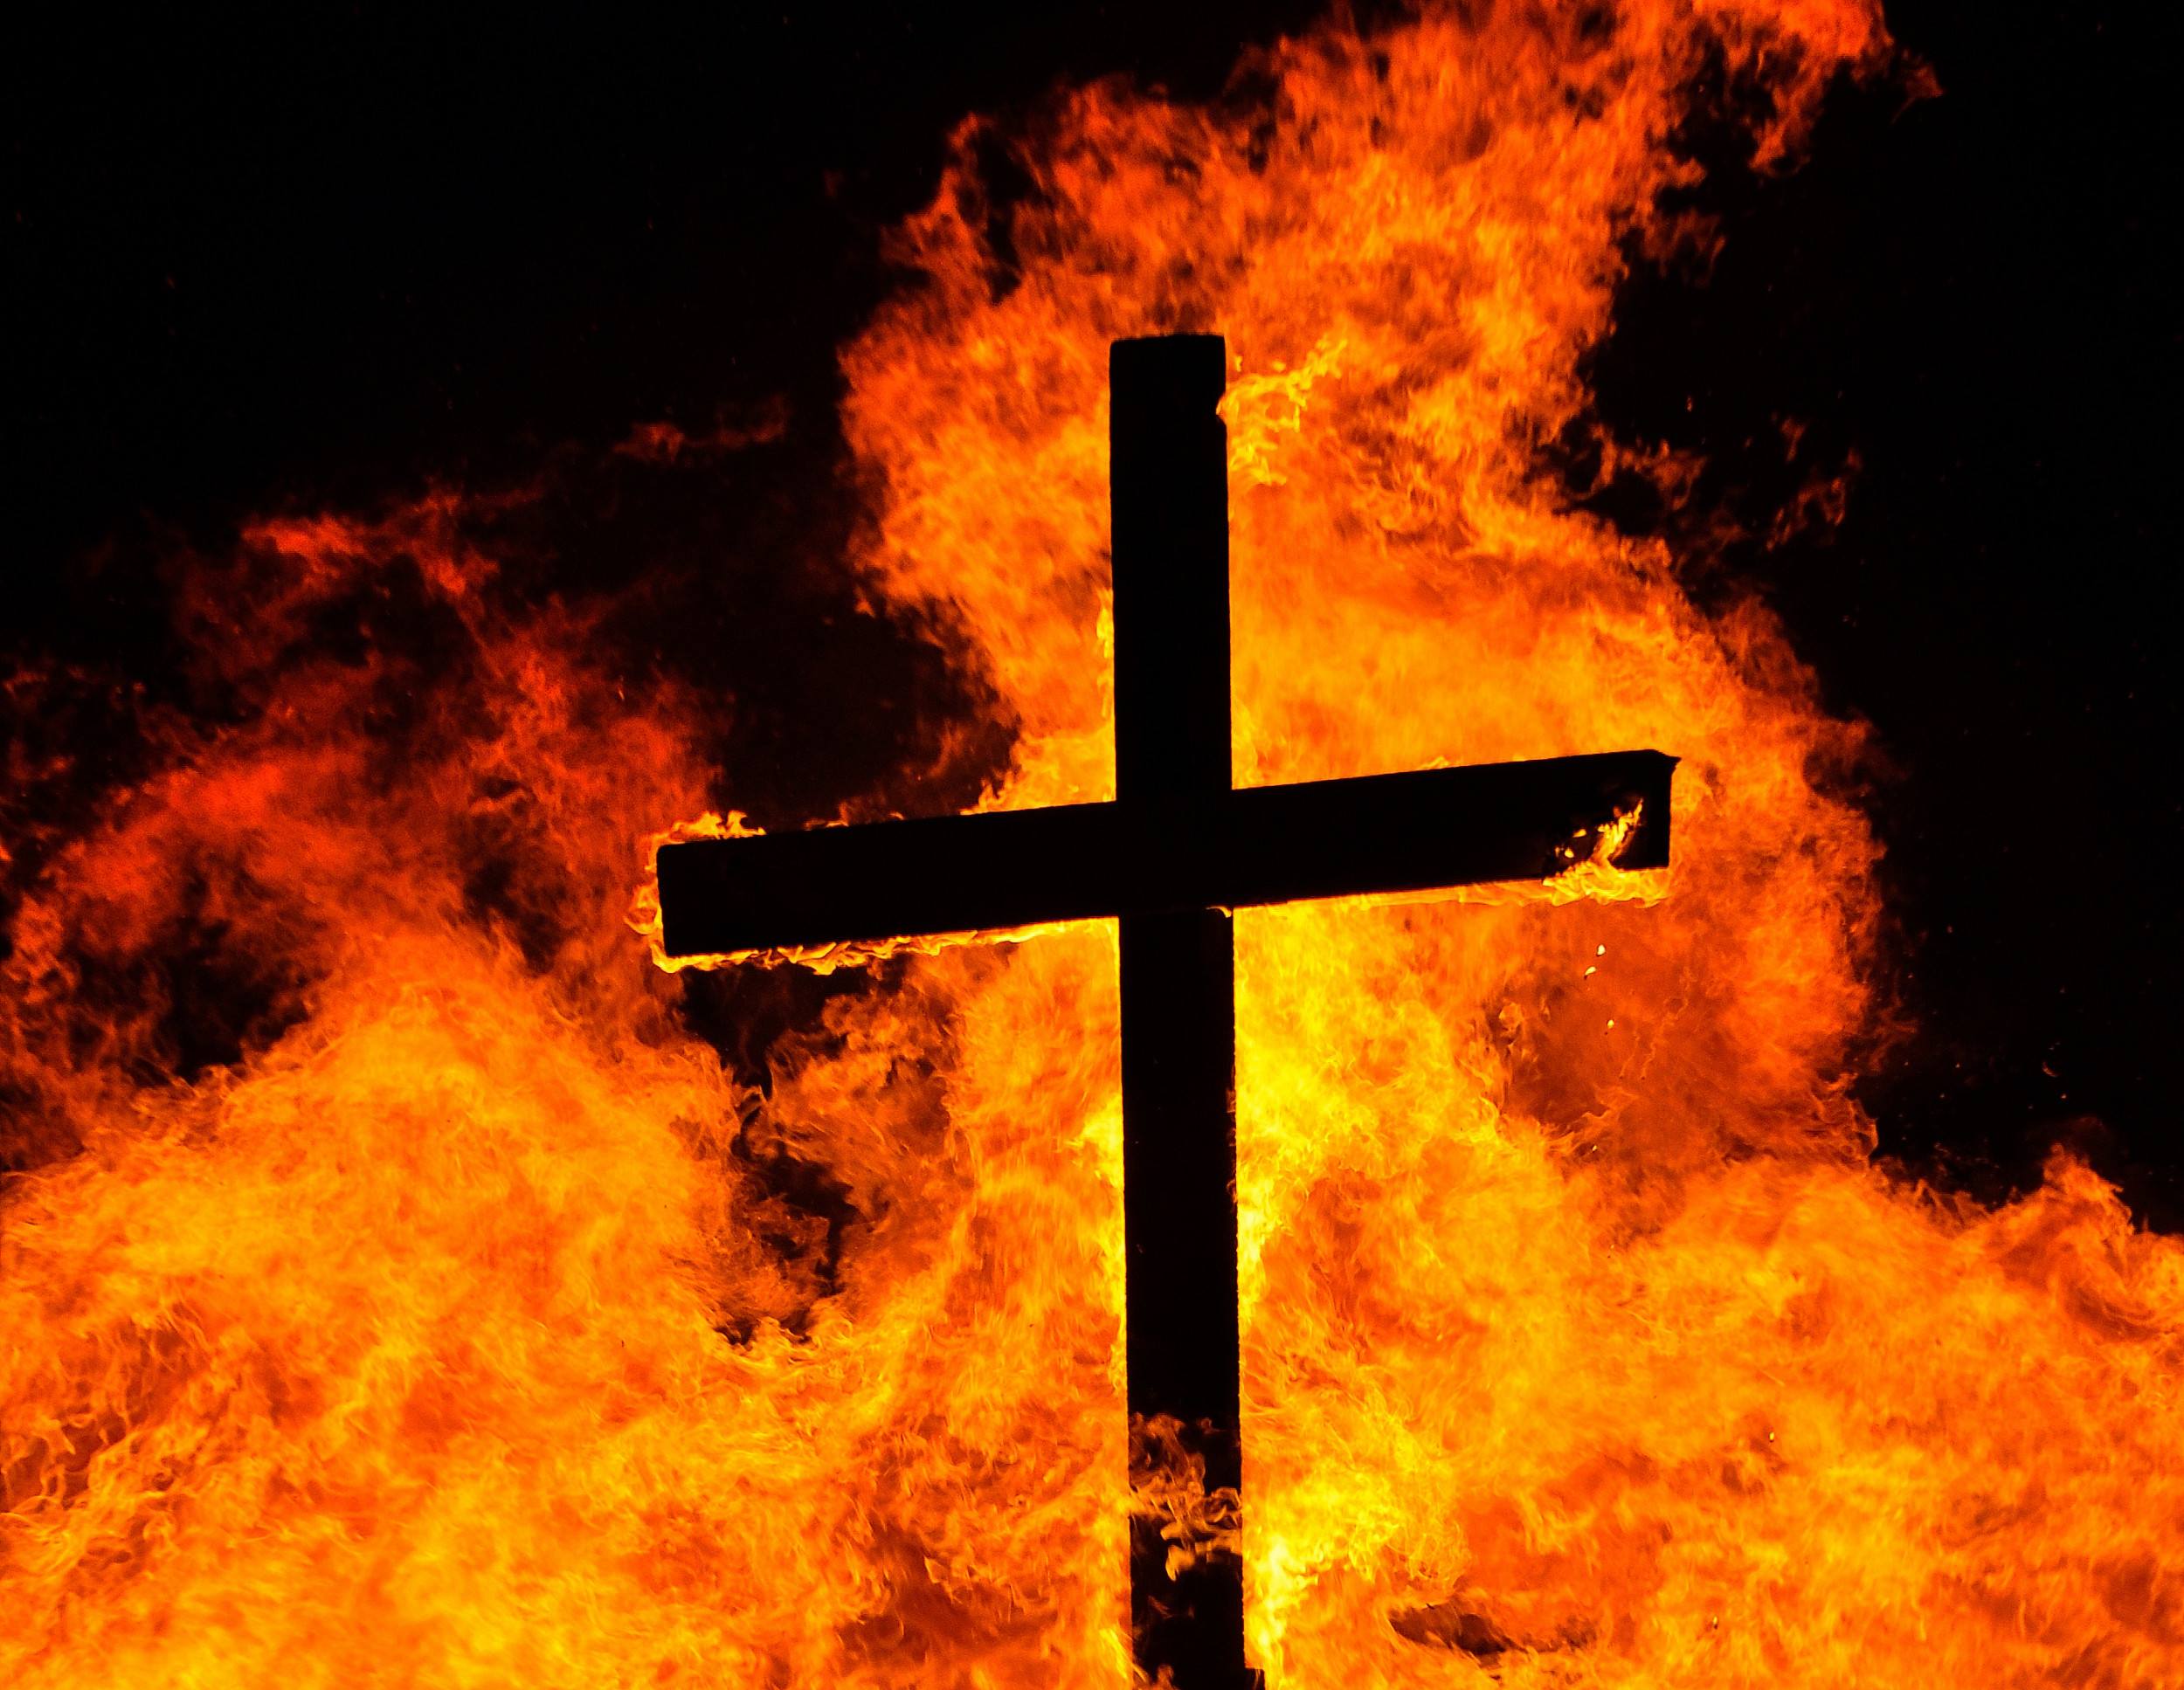 Young Black Activist Has Burning Cross In Yard in Marion Virginia